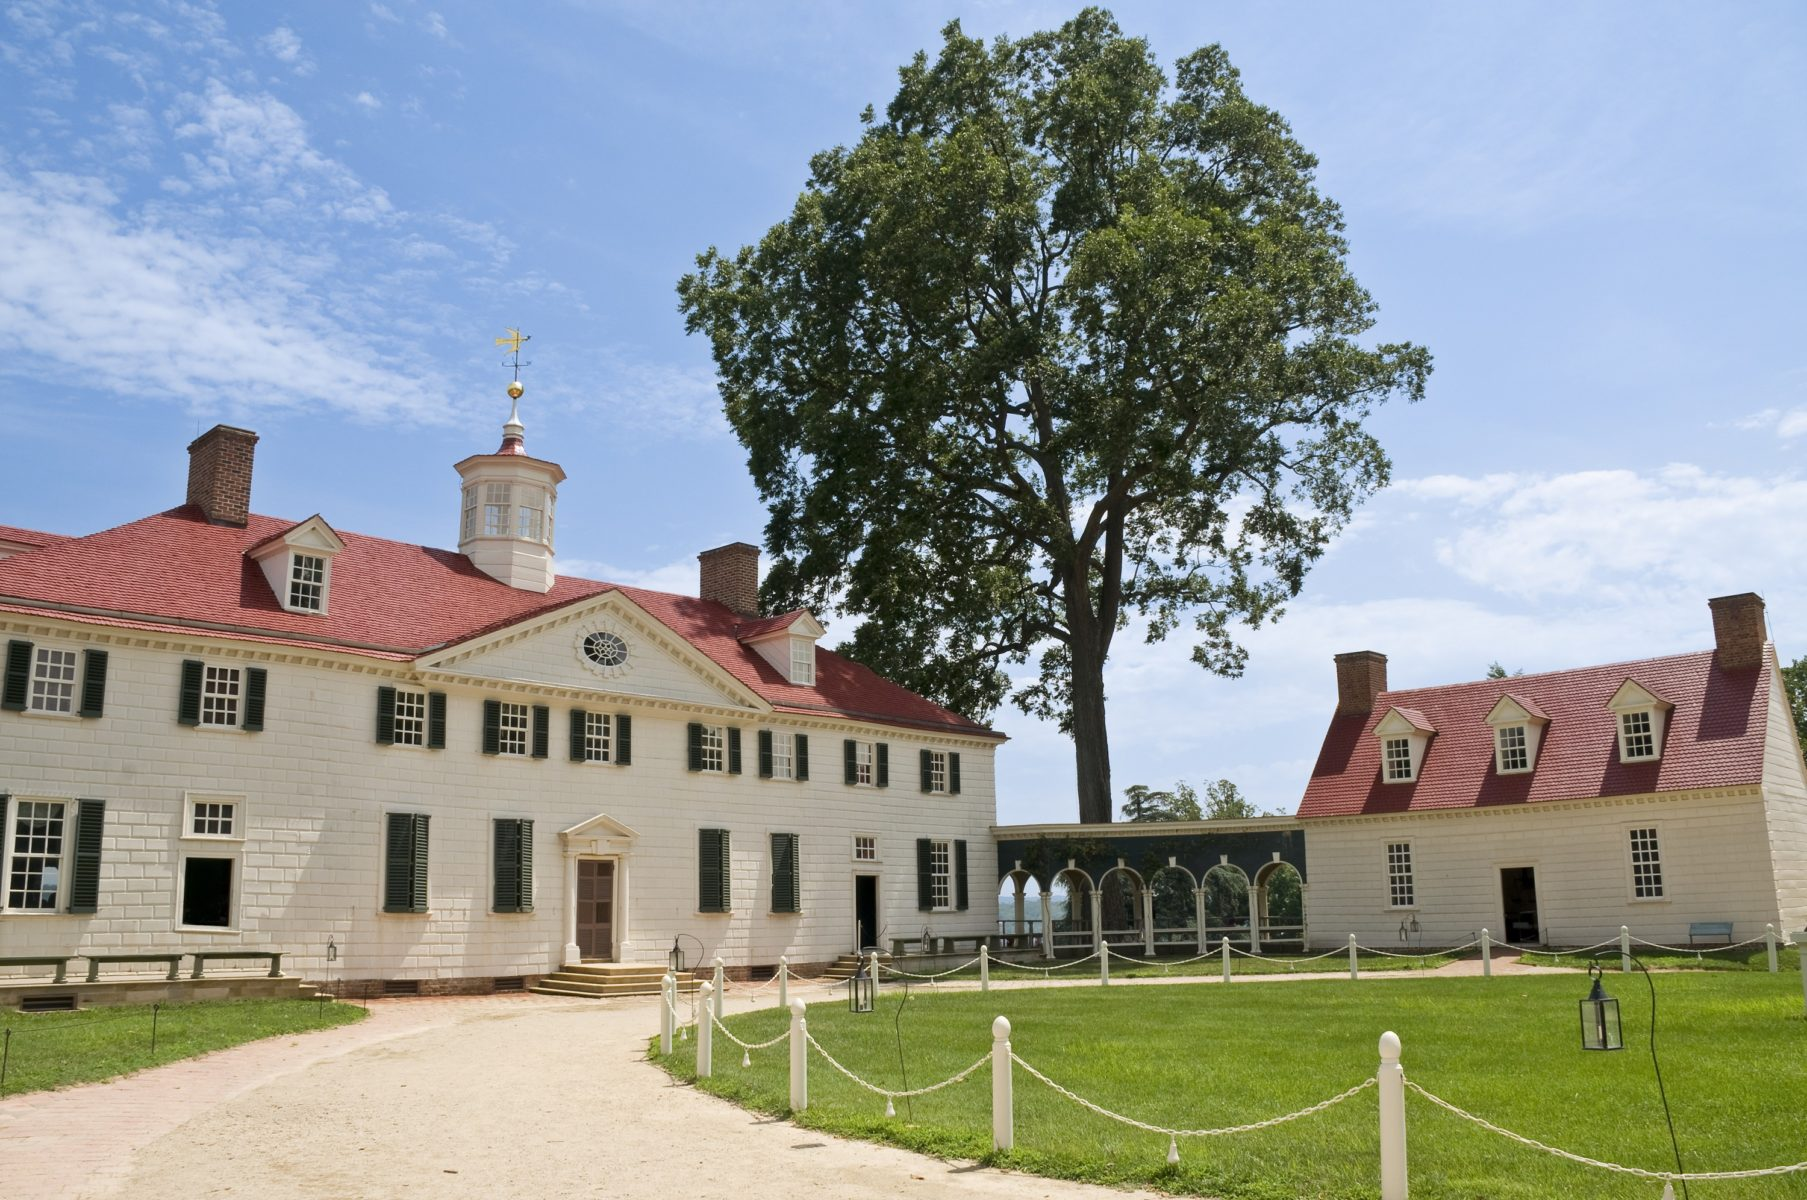 The home of former president of the USA George Washington. Wide angle view.